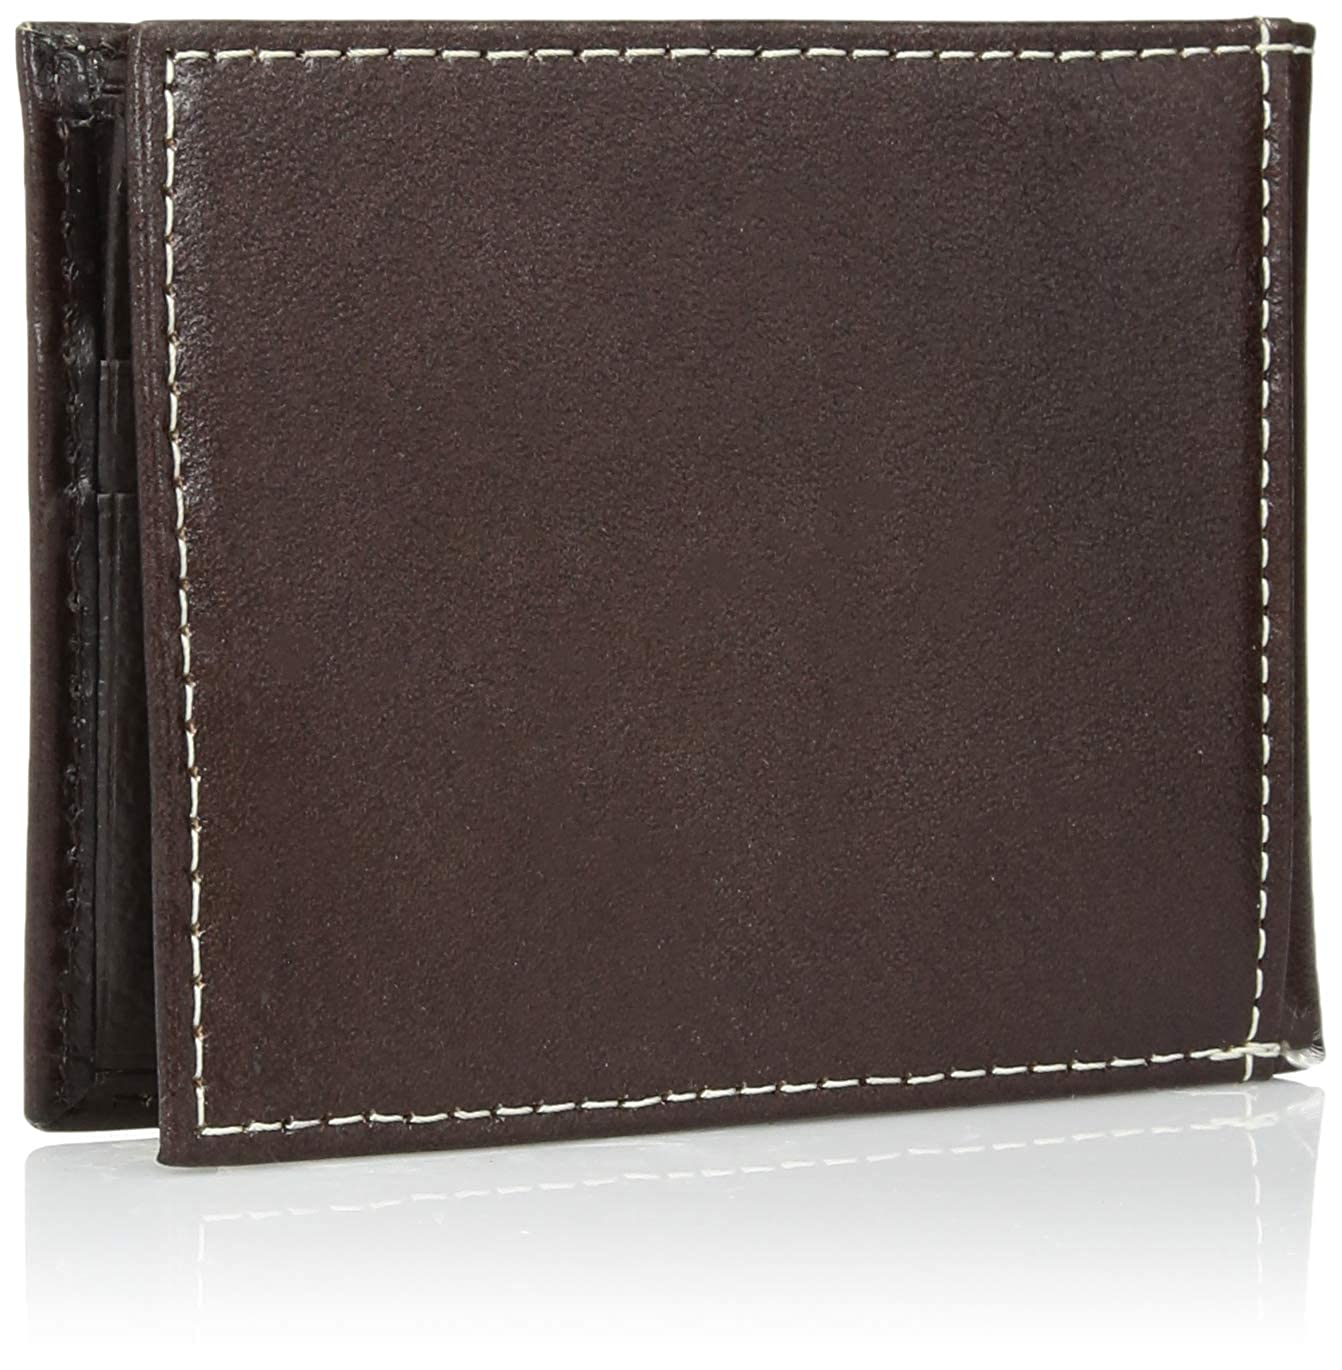 Ariat Unisex-Adults Floral Inlay Buck Edge Bifold Wallet brown